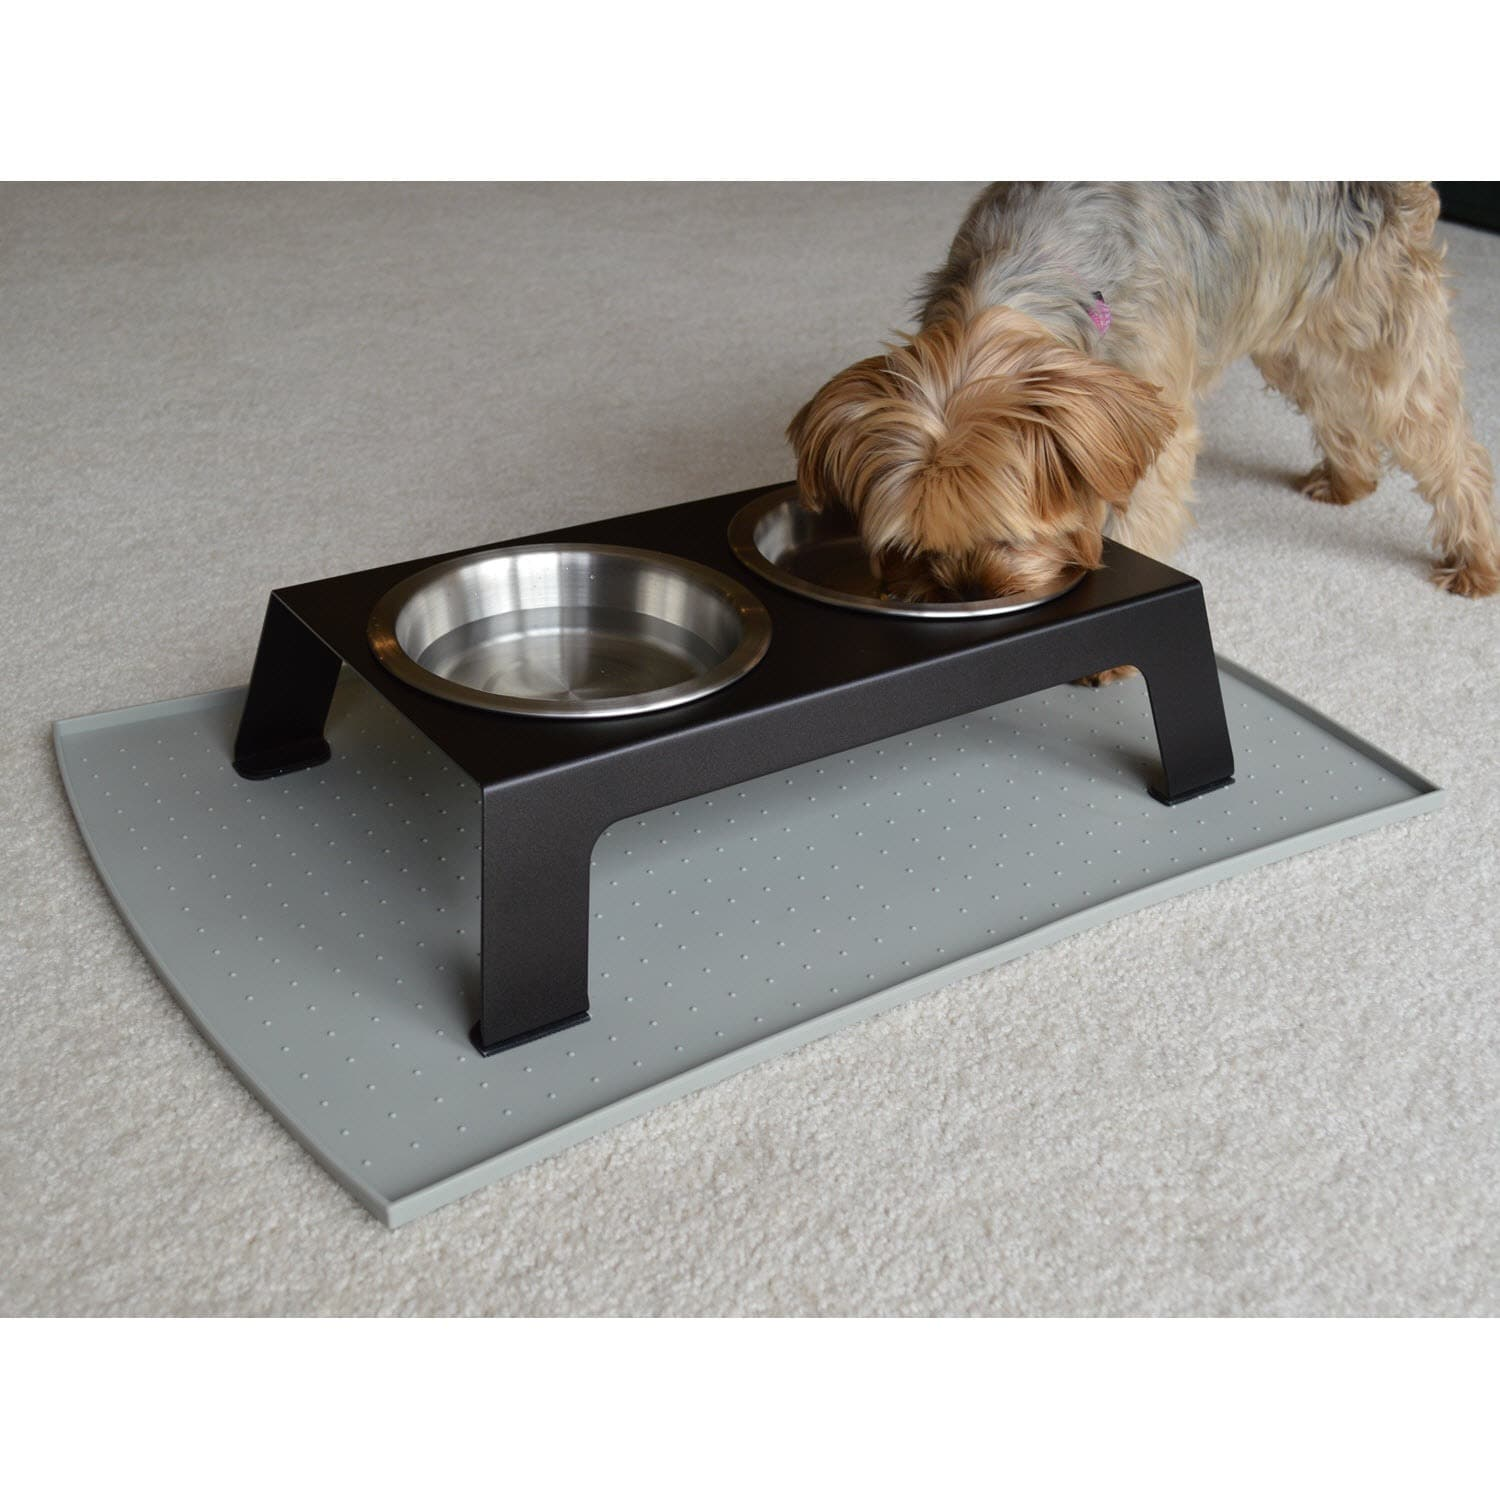 more the with reviews glass read by cat of pin bowls feeder elevated product